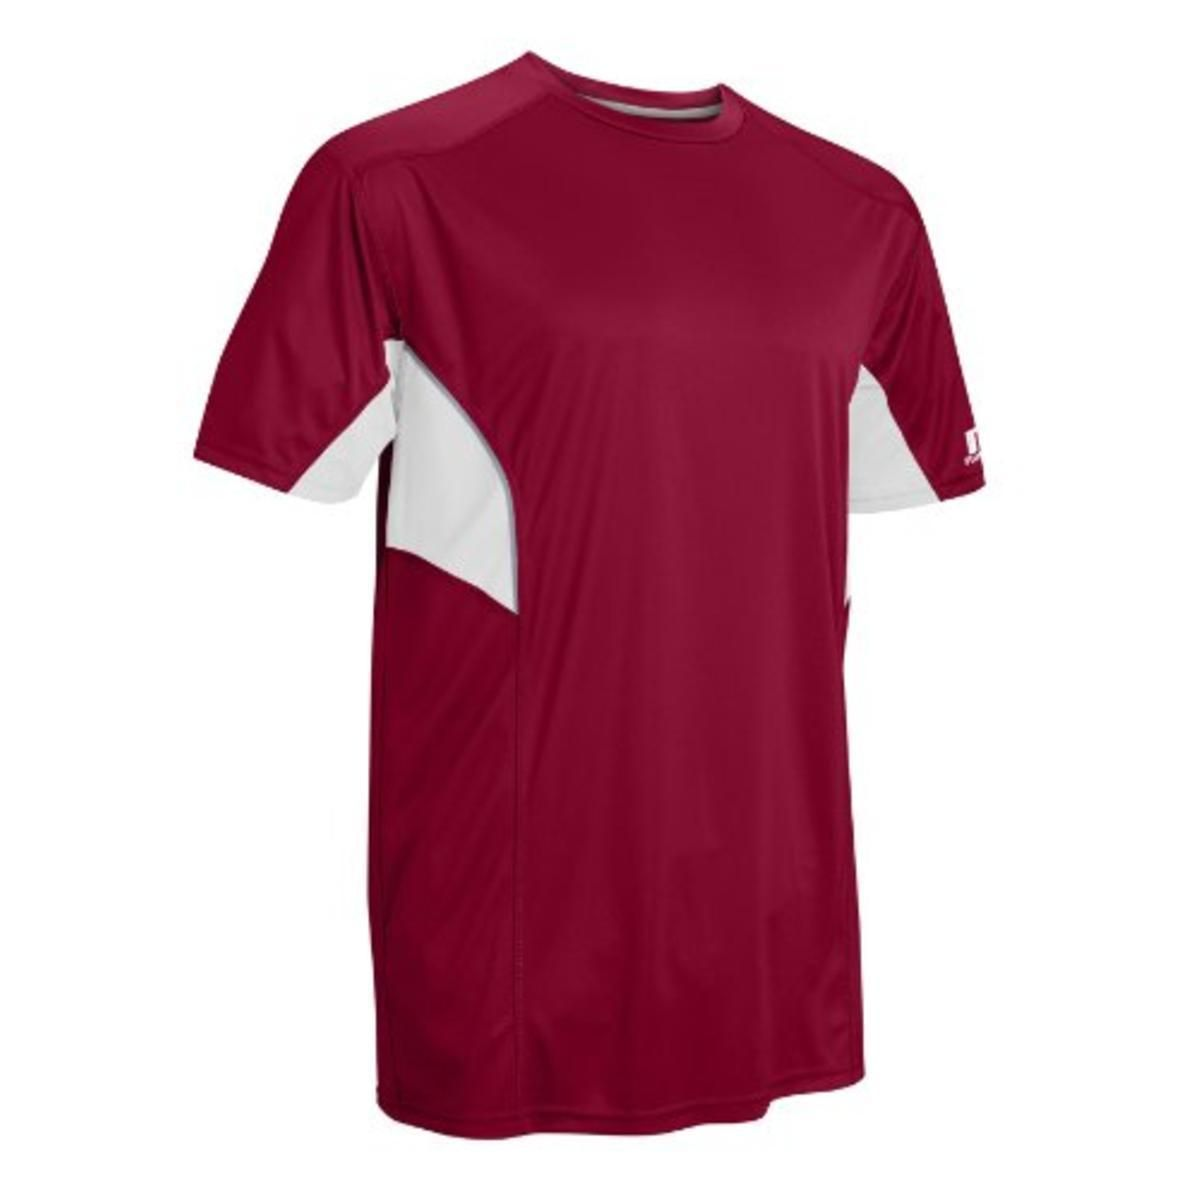 Russell Athletic 1163 Mens Red Colorblock Reflective T-Shirt Athletic L Retail Price $16.99